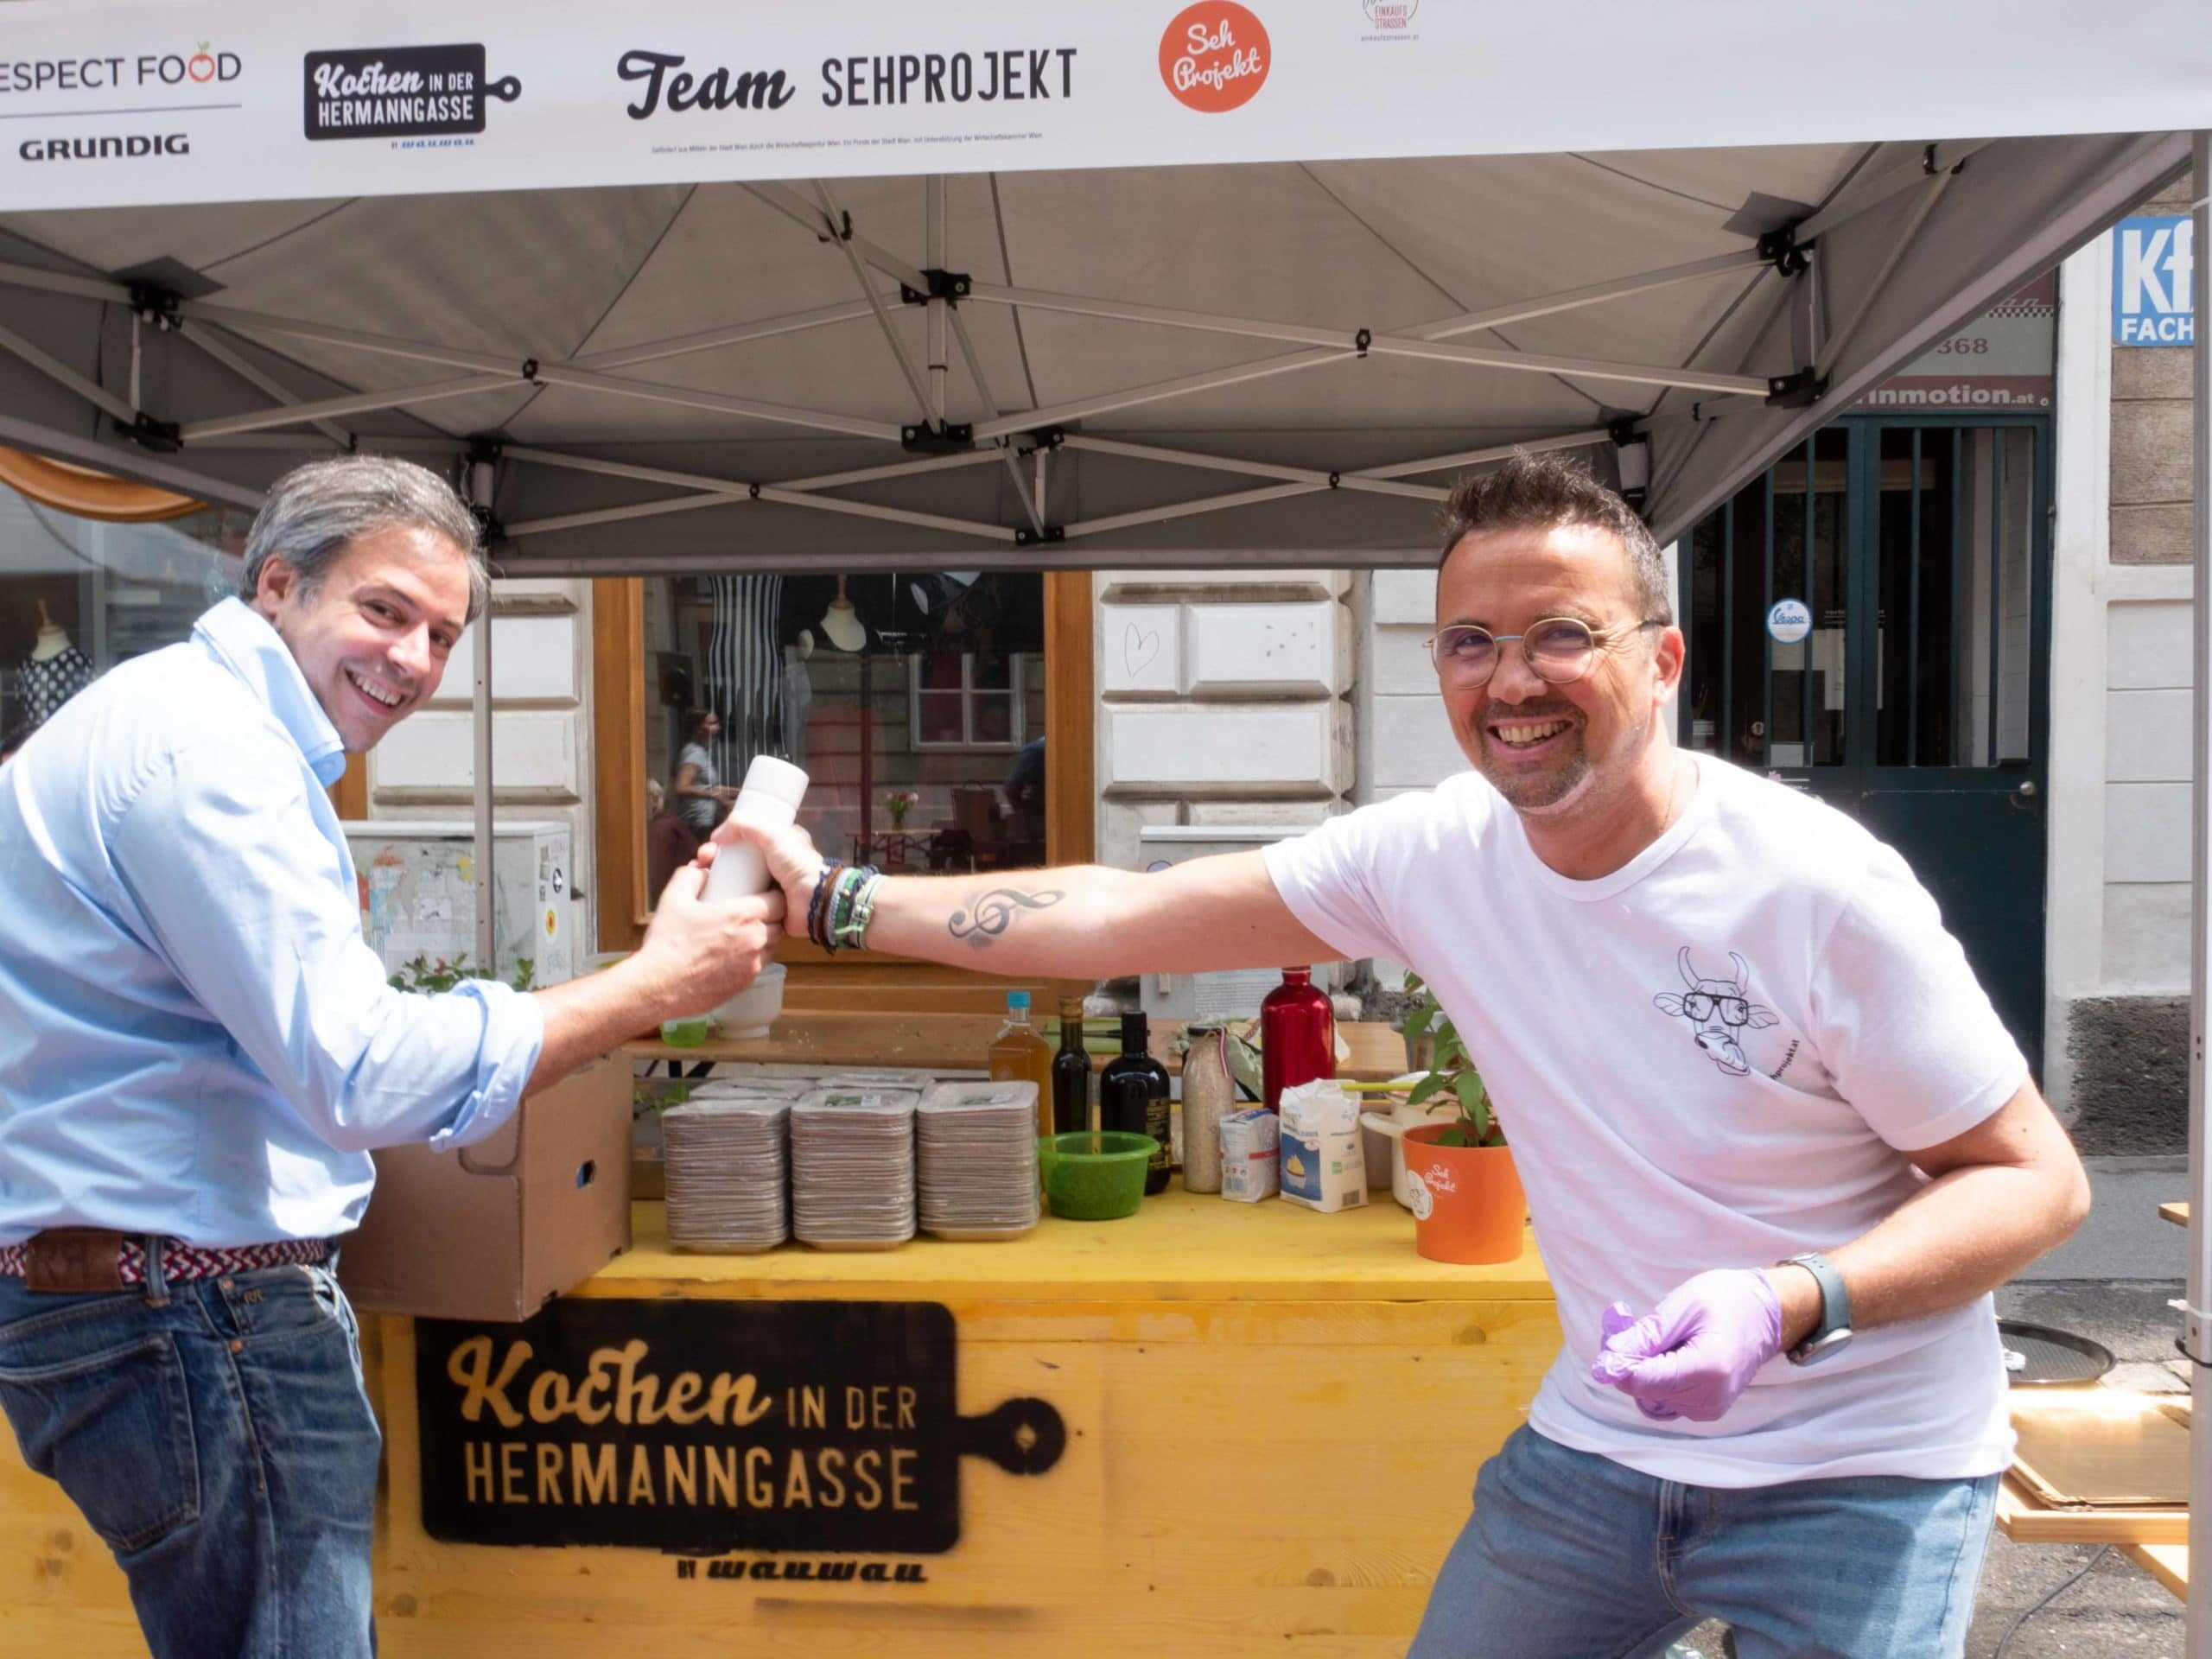 Kochen in der Hermanngasse 2019 Team Sehprojekt